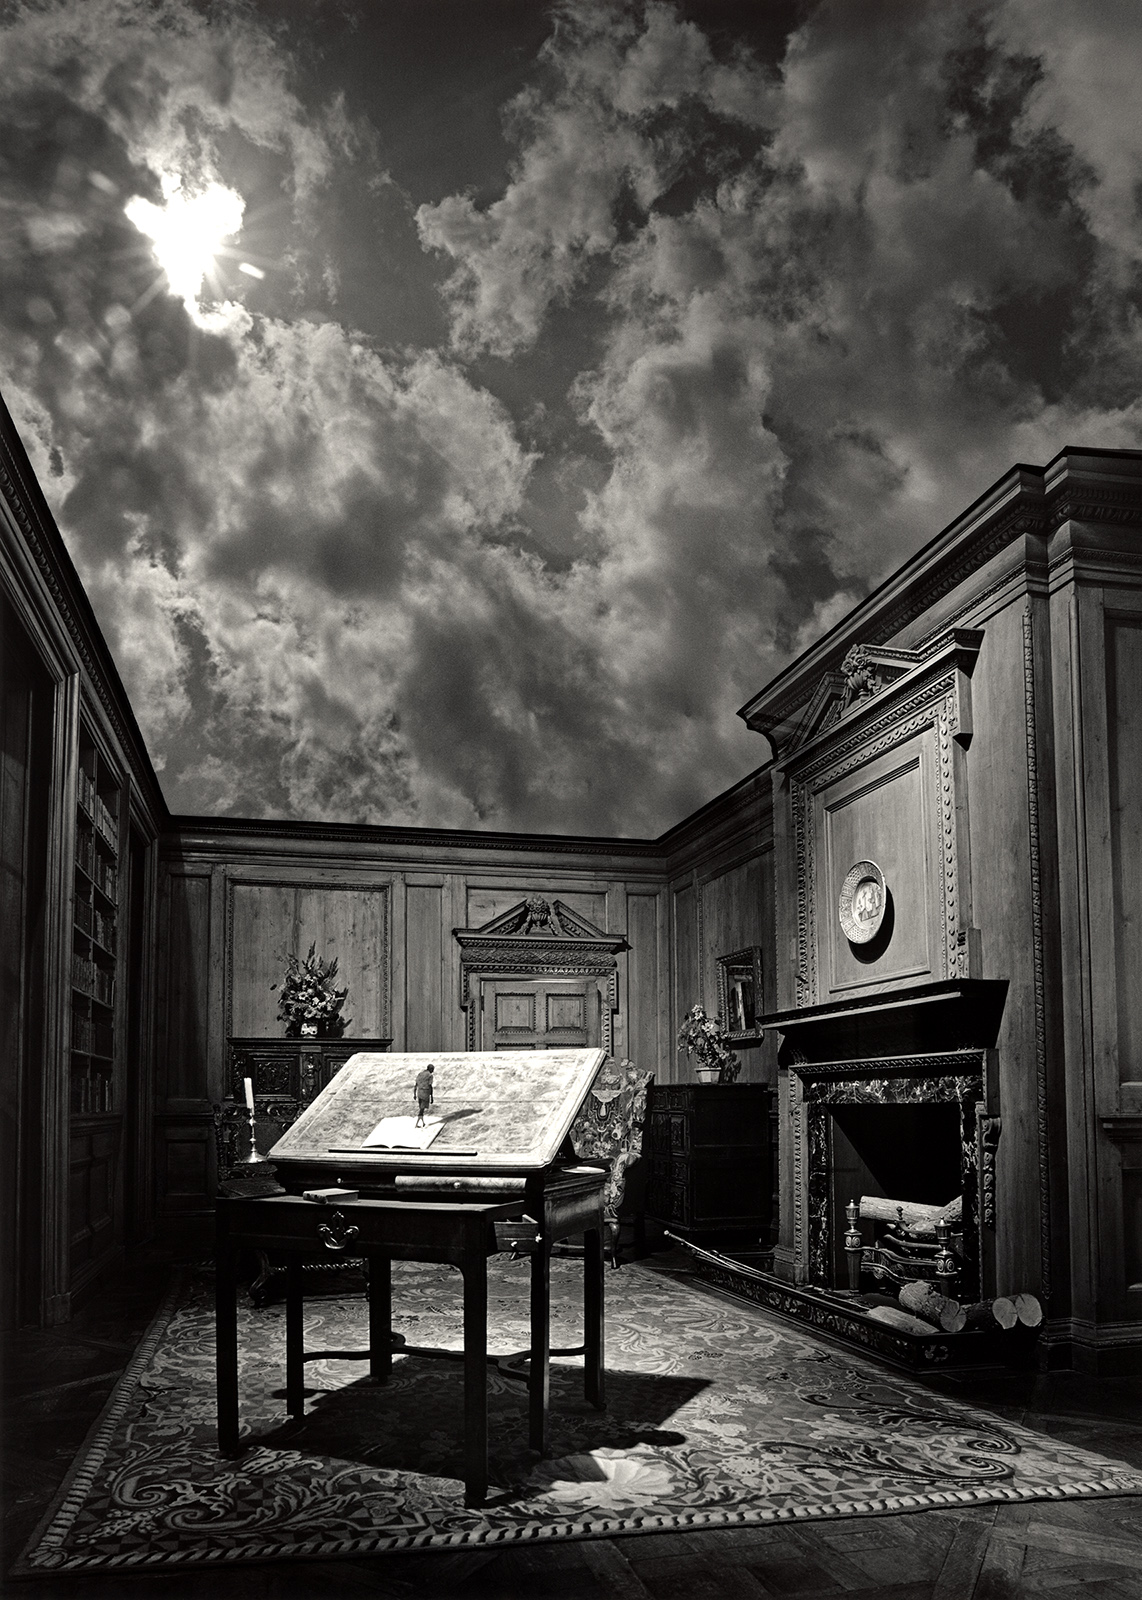 Untitled, by Jerry Uelsmann, 1976.